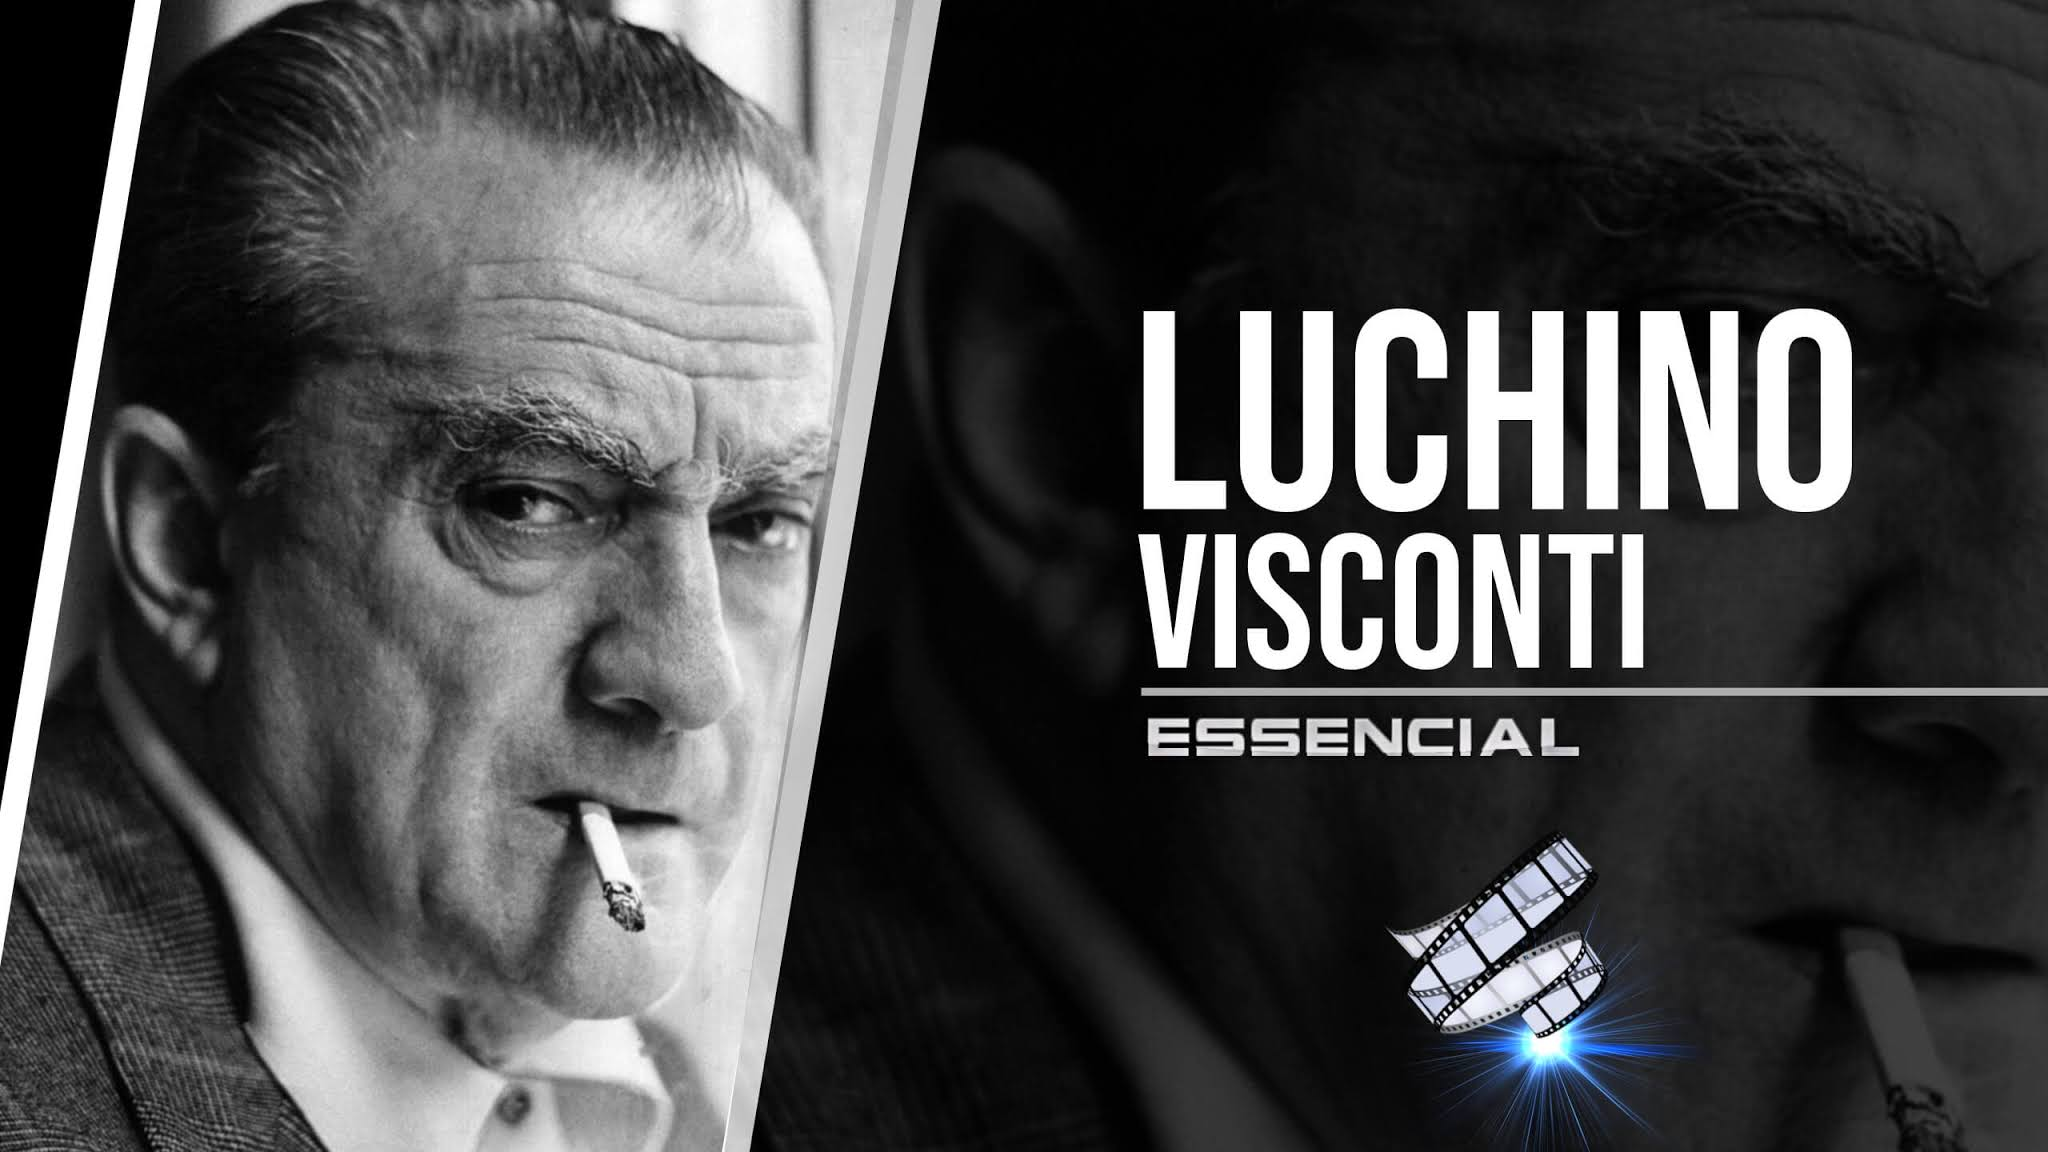 Luchino-visconti-10-filmes-essenciais